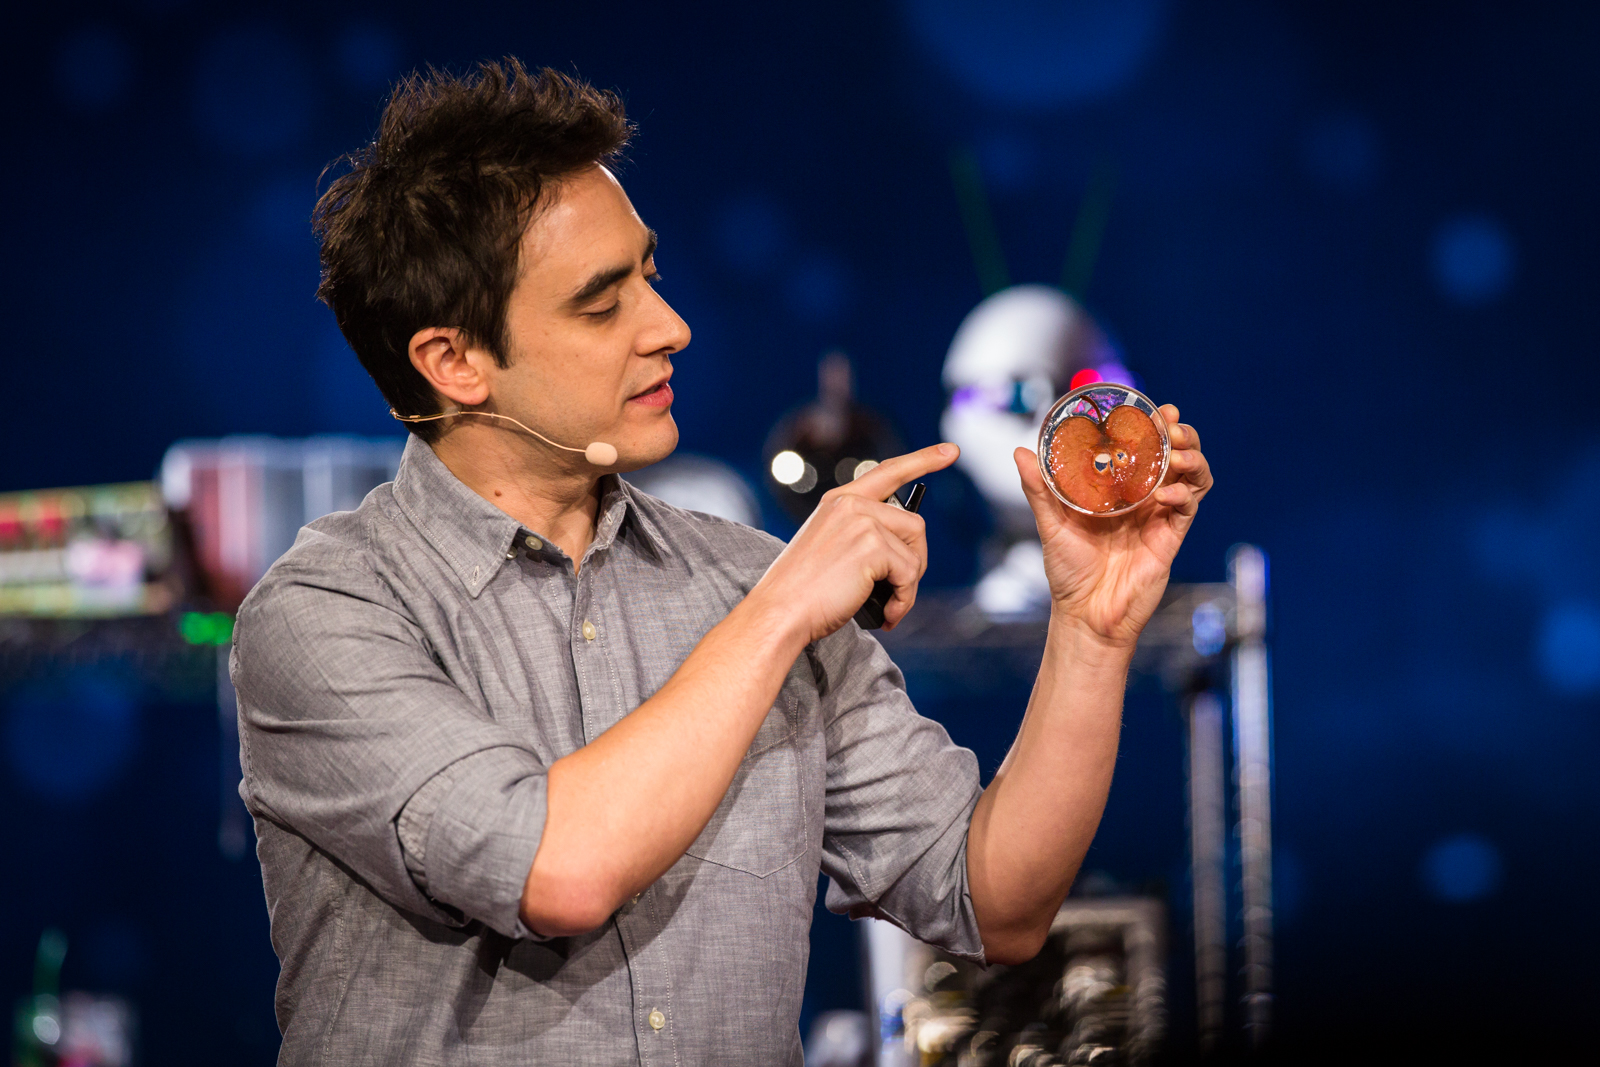 Andrew Pelling imagines growing human body parts -- using apples as scaffolding. He spoke onstage in the TED Fellows session of TED2016, February 15-19, 2016 Photo: Ryan Lash / TED